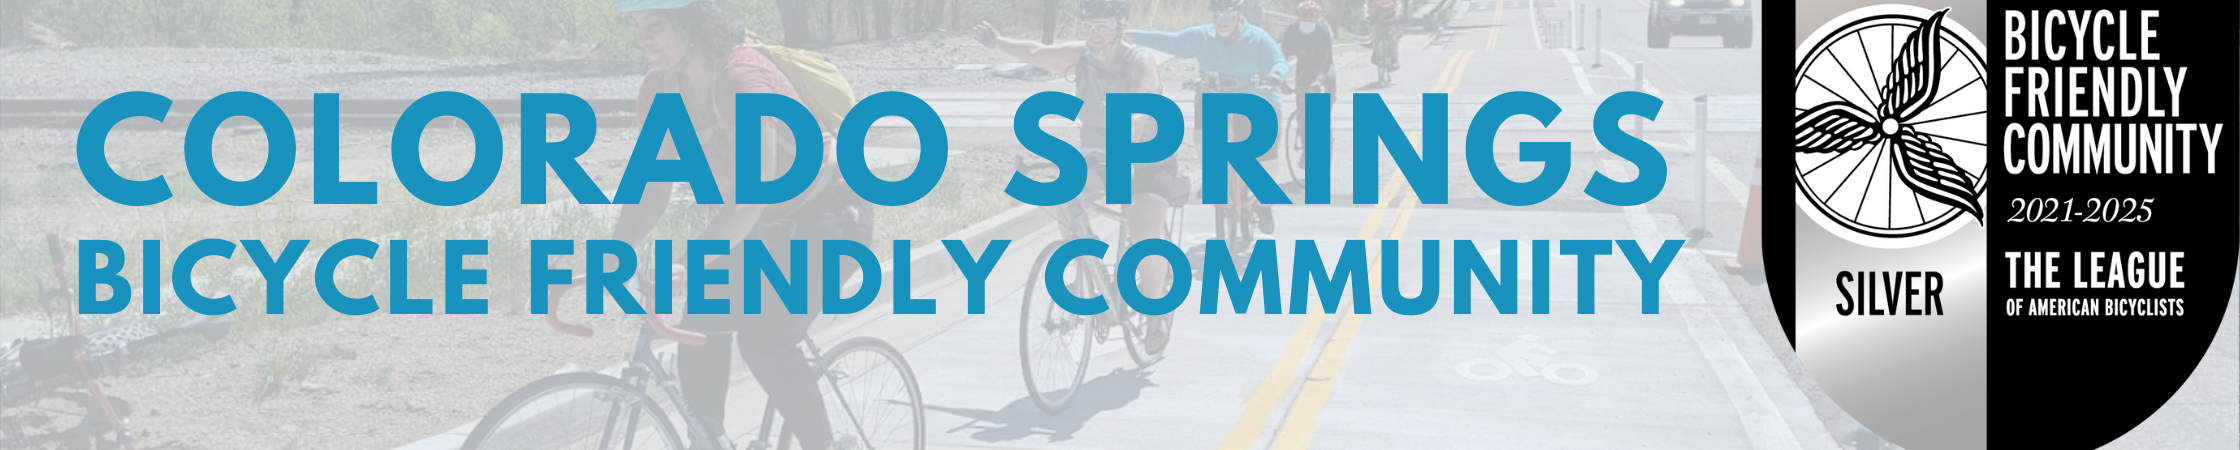 Silver Bicycle Friendly Community In 2021